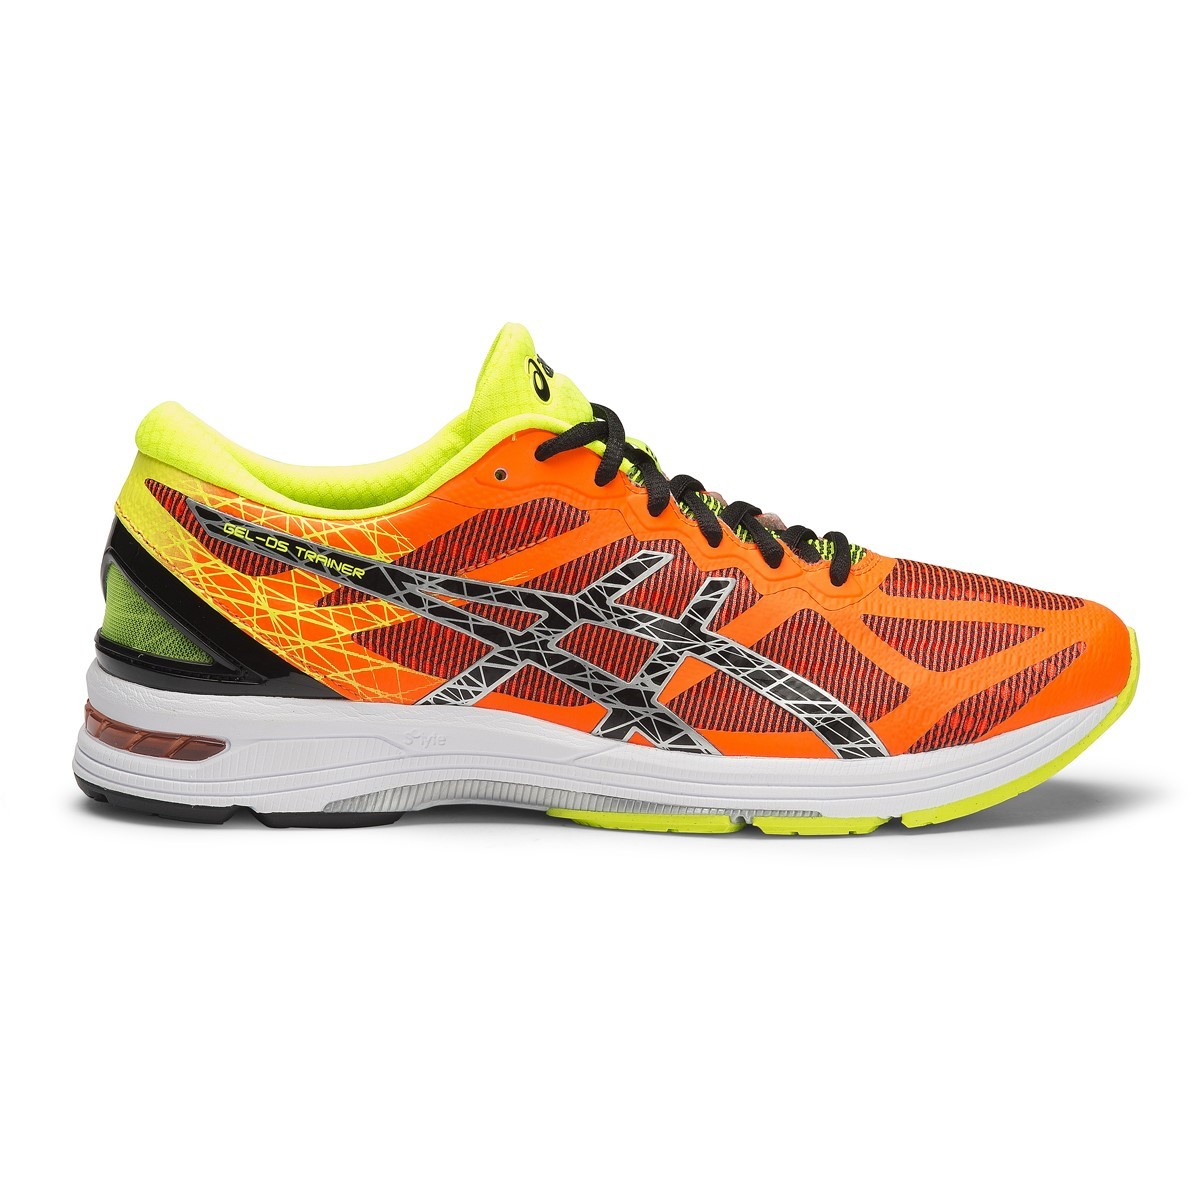 asics gel ds trainer 21 nc neutral mens running shoes. Black Bedroom Furniture Sets. Home Design Ideas